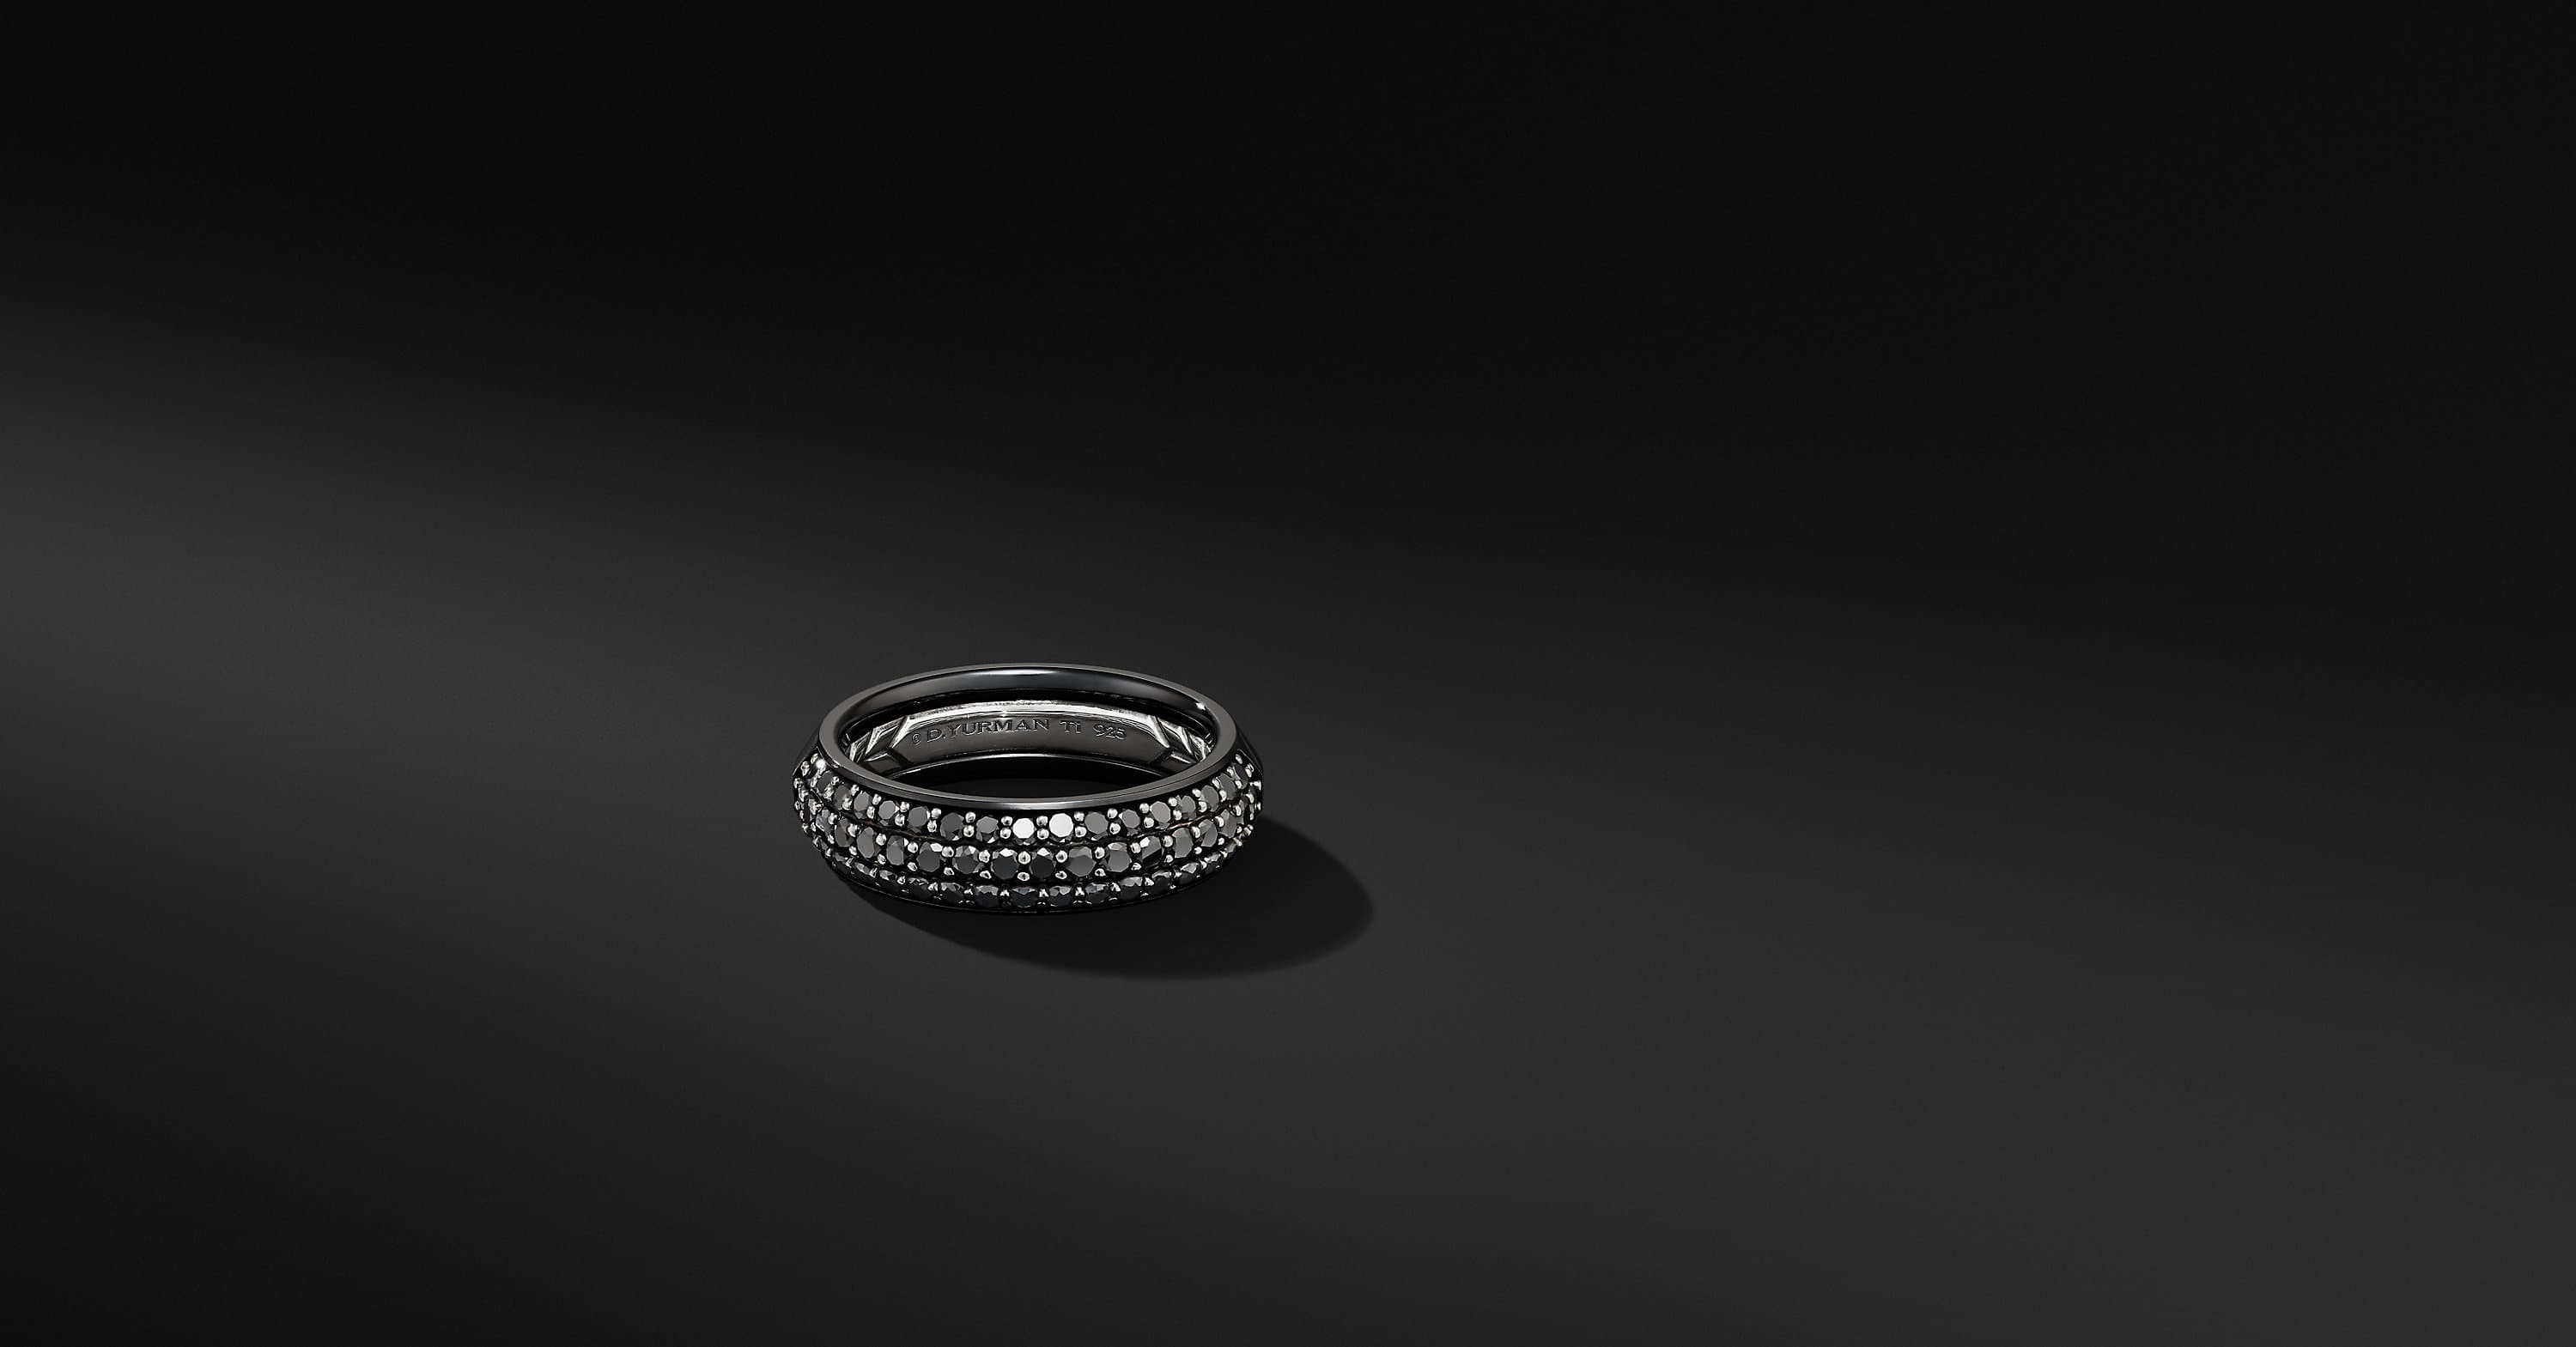 Half Pavé Beveled Band Ring in Black Titanium, 6mm